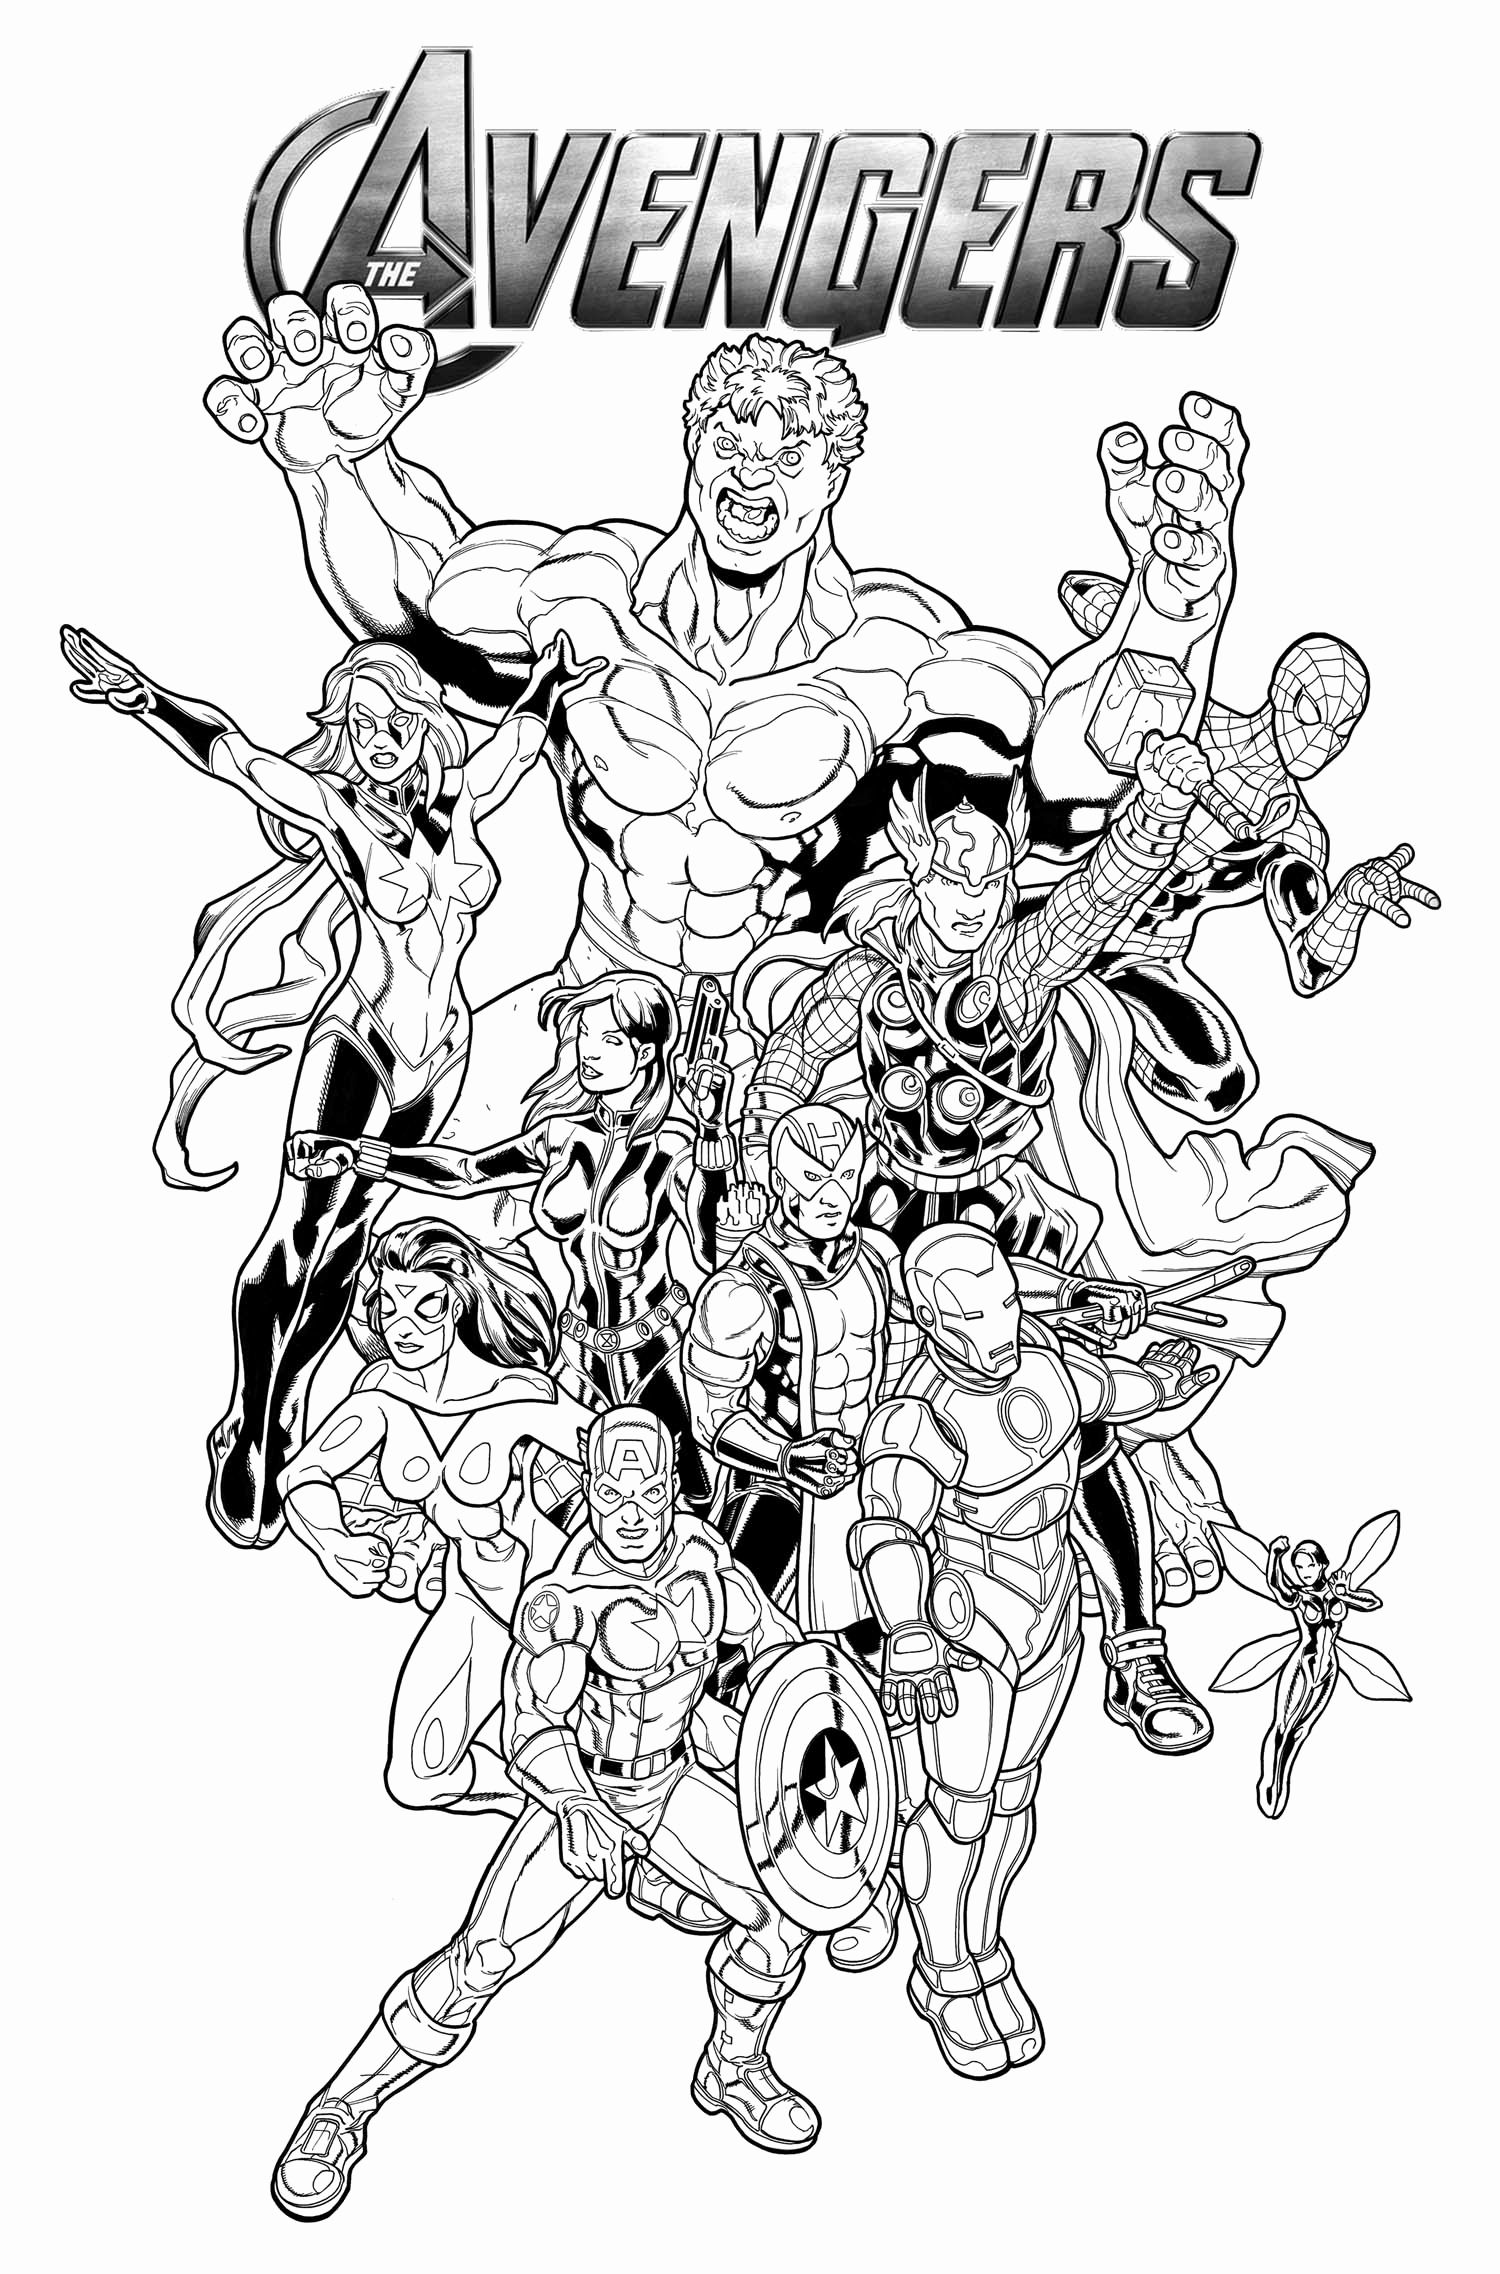 Lego Avengers Coloring Pages For Kids In 2020 Avengers Coloring Pages Avengers Coloring Marvel Coloring